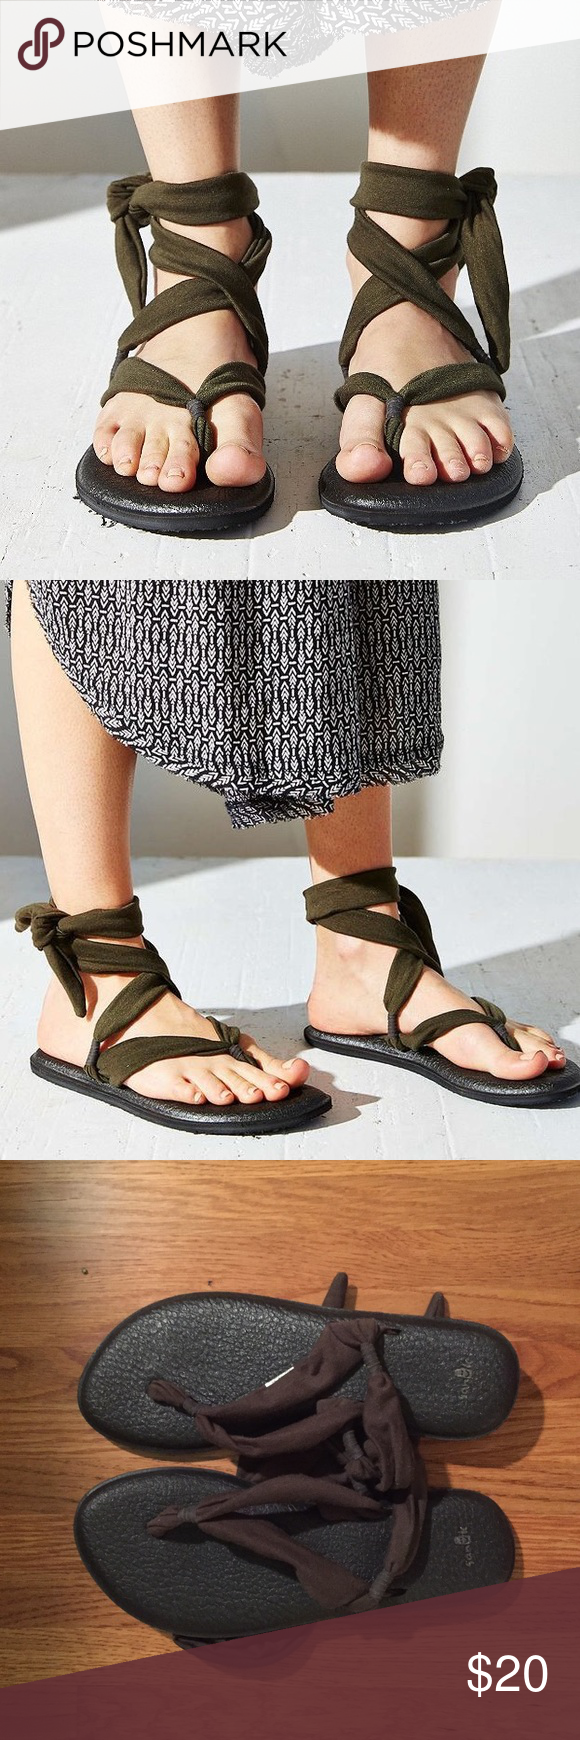 Sanuk Tie Slinged Up Yoga Sandal Green These shoes are so incredibly cute and comfortable! They are amazing. I only wore them once to a church picnic and they were so comfy. They look brand new! Sanuk Shoes Sandals